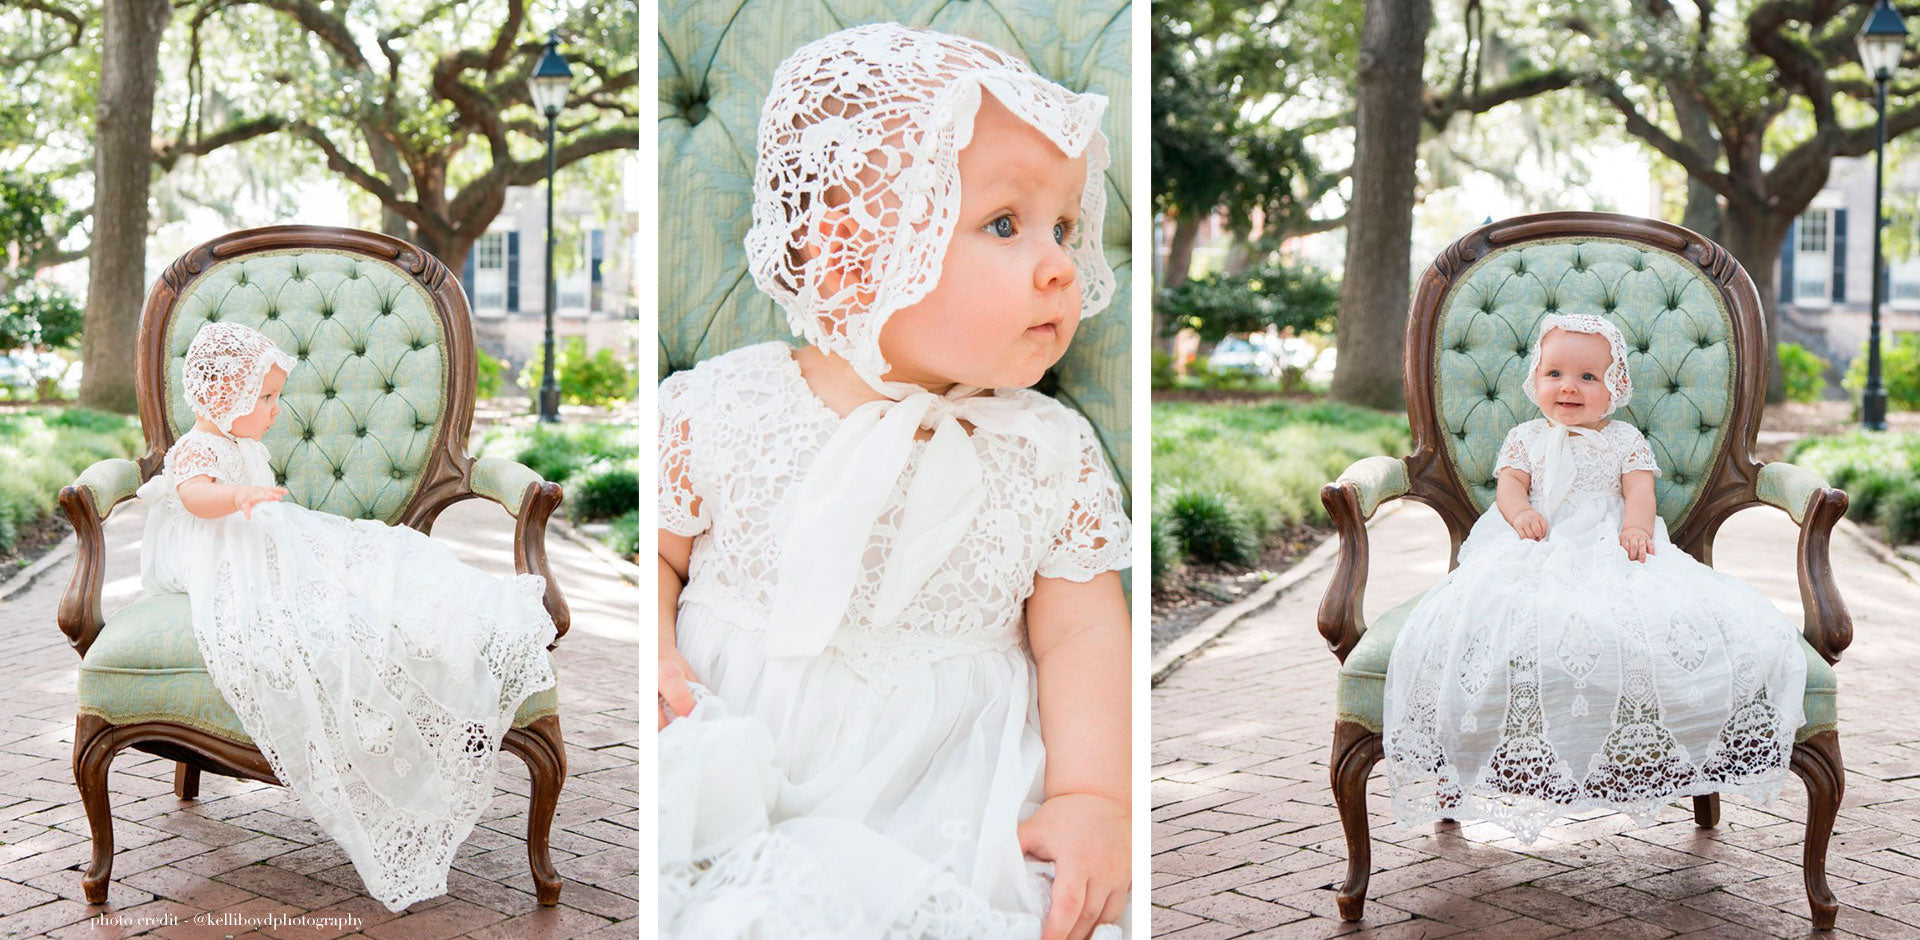 Christening Gowns and Baptism Outfits - ChristeningGowns.com